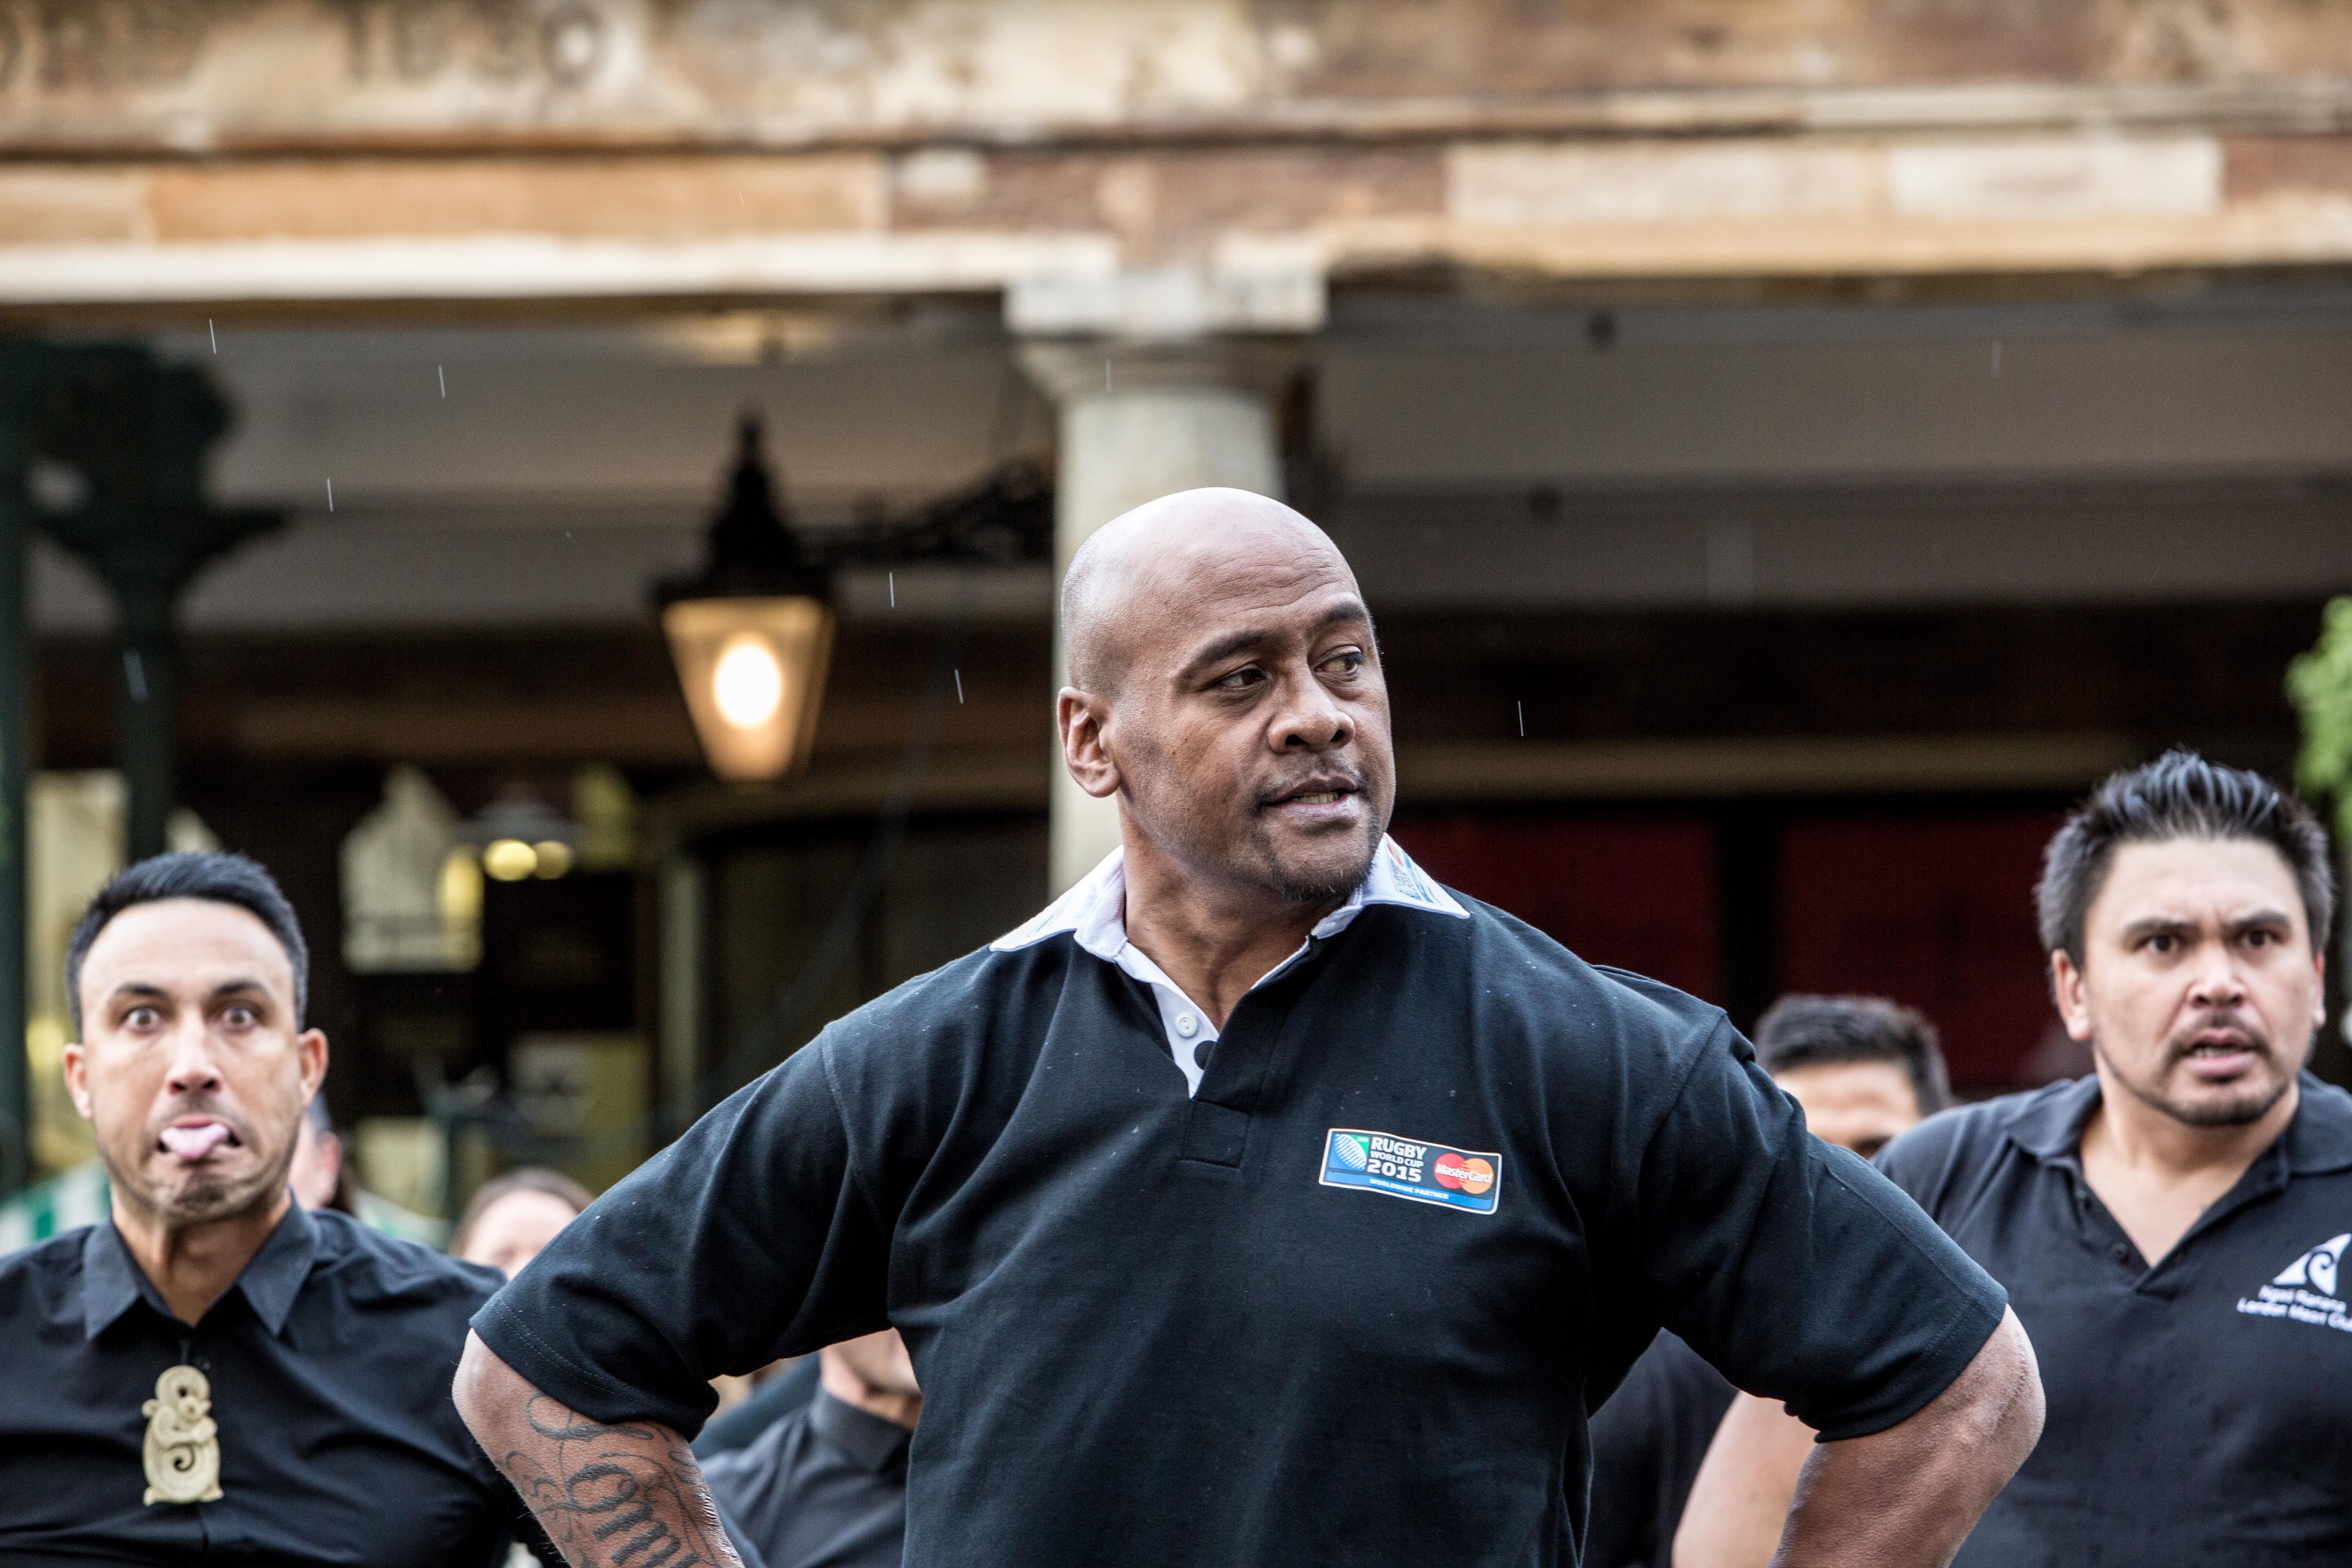 MasterCard Rugby World Cup 2015 ambassador Jonah Lomu, accompanied by Londoners and the Ngāti Rānana London Māori Club performed a Priceless haka in Covent Garden, London.